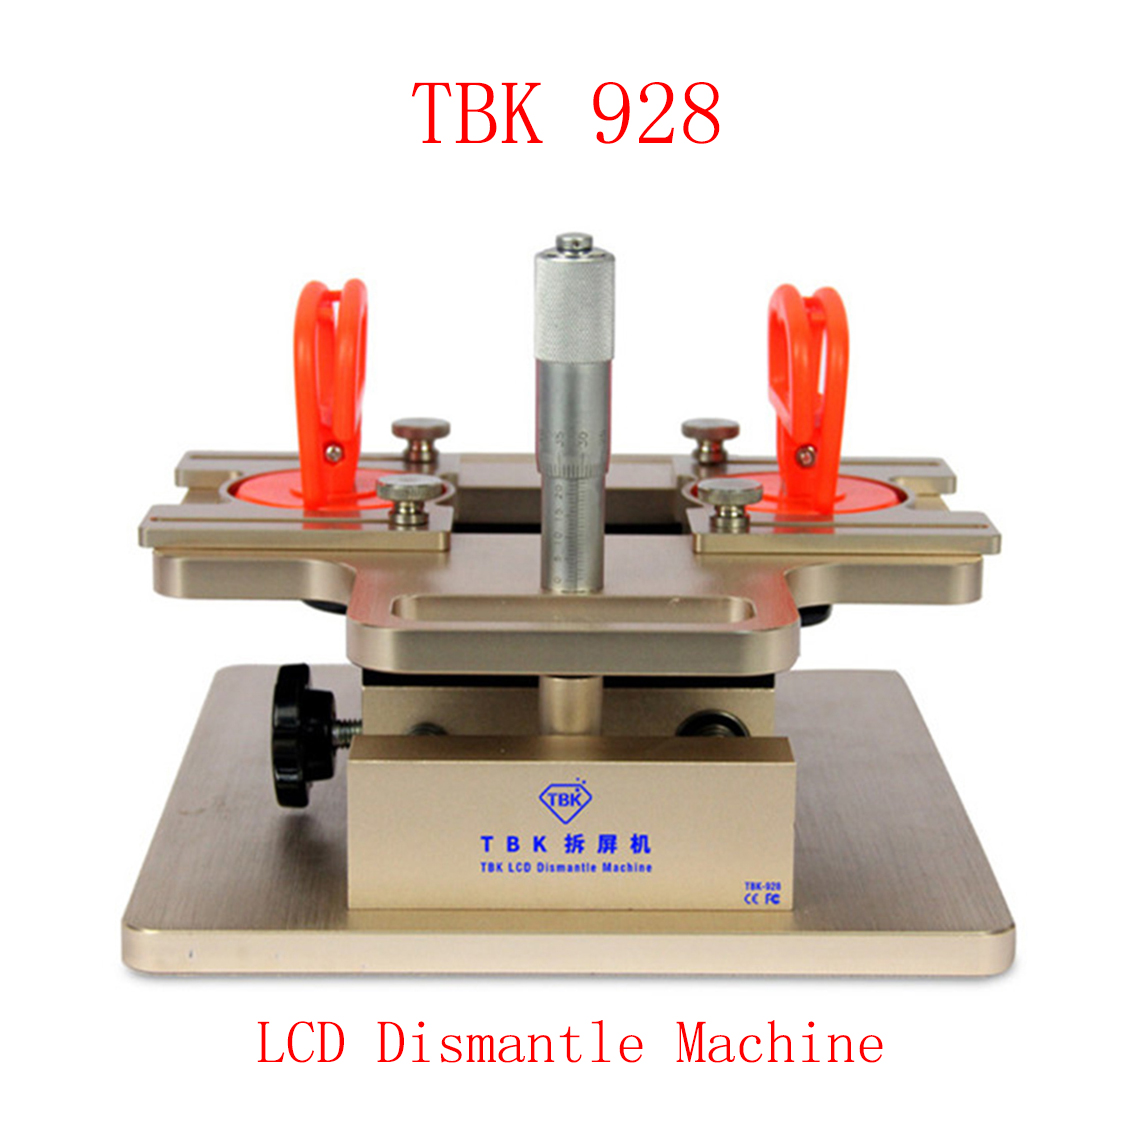 TBK 928 LCD Dismantle Machine A frame Separator For mobile phone Precisely Adjust By Micrometer|Soldering Stations|   - AliExpress